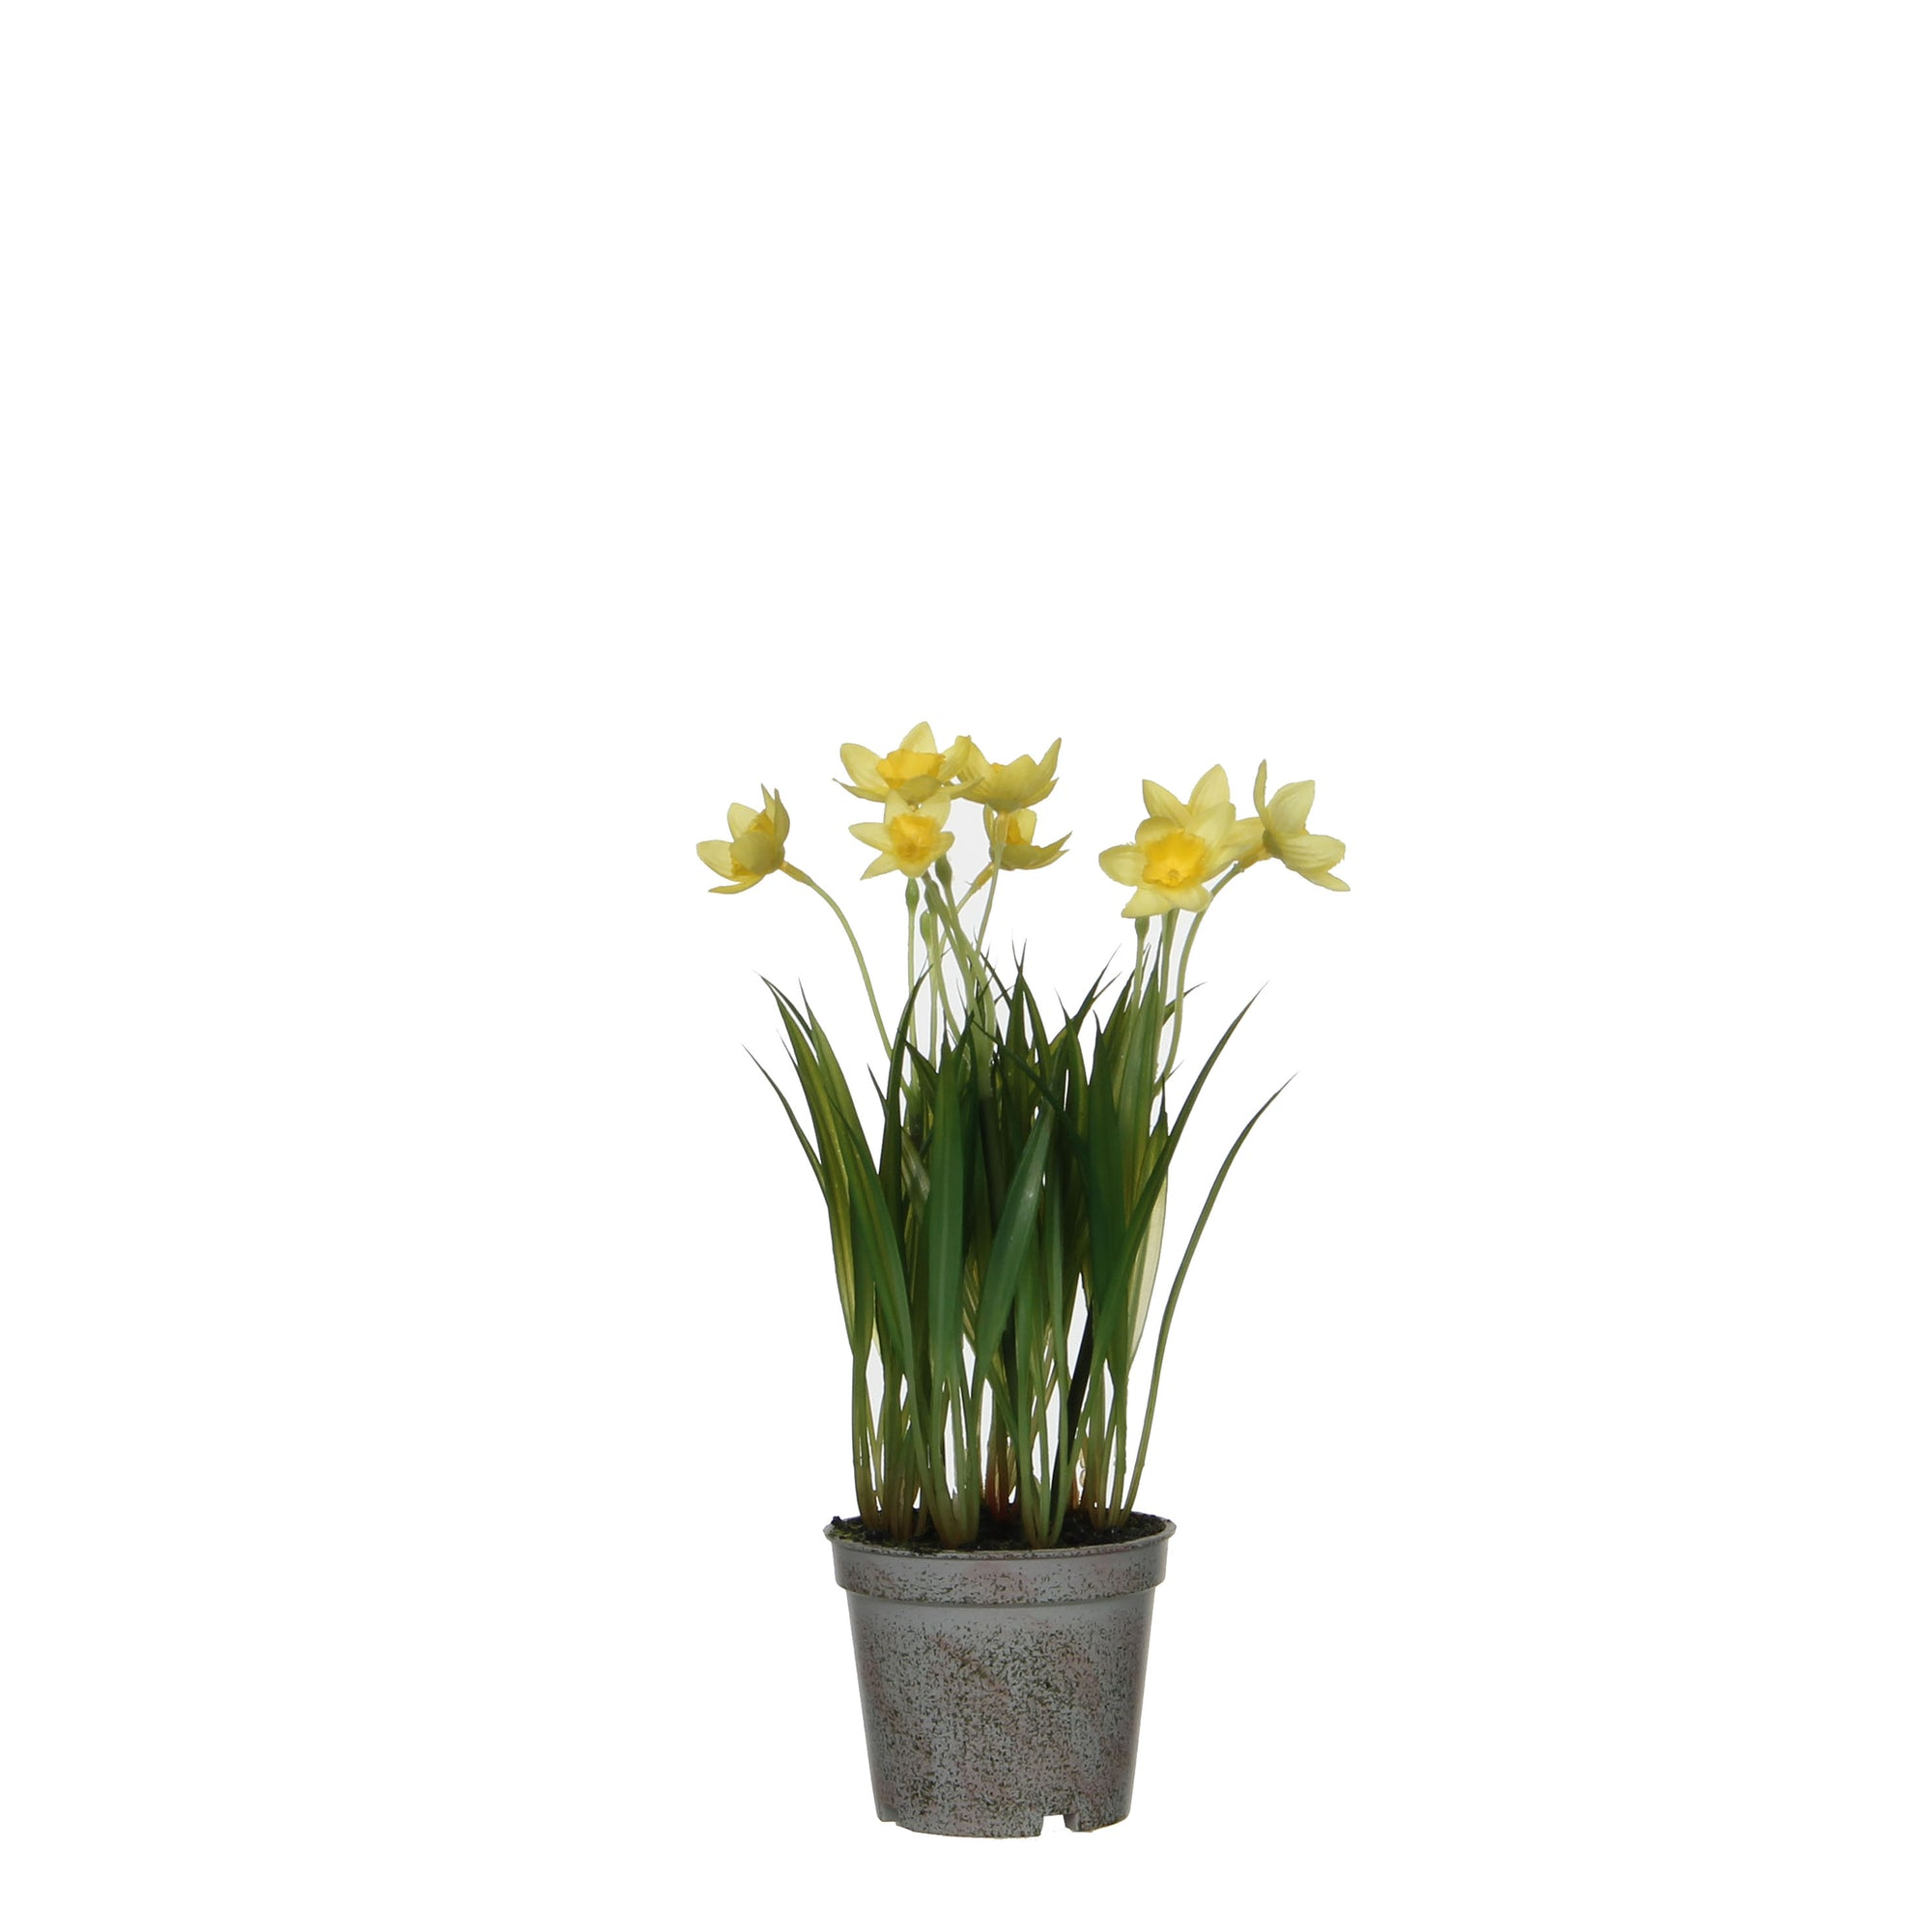 Daffodil in Plastic Pot